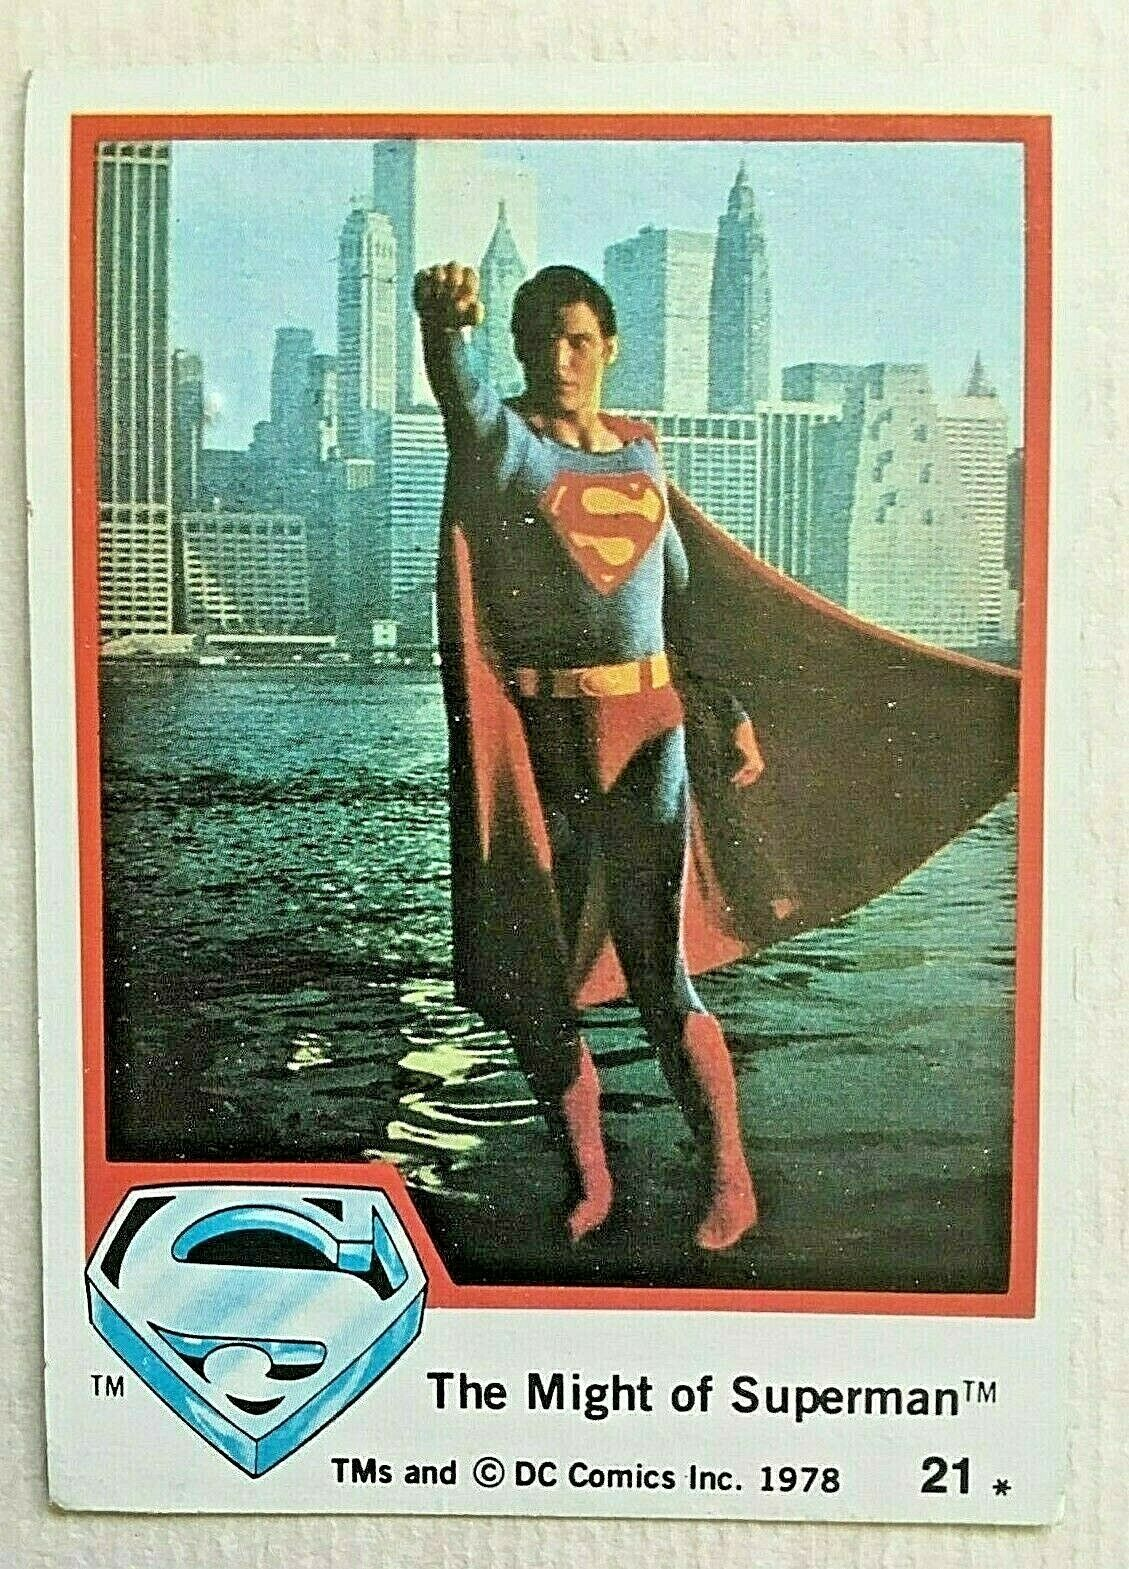 Topps 1978 Superman The Movie Trading Cards: #21 The Might of Superman - $9.50